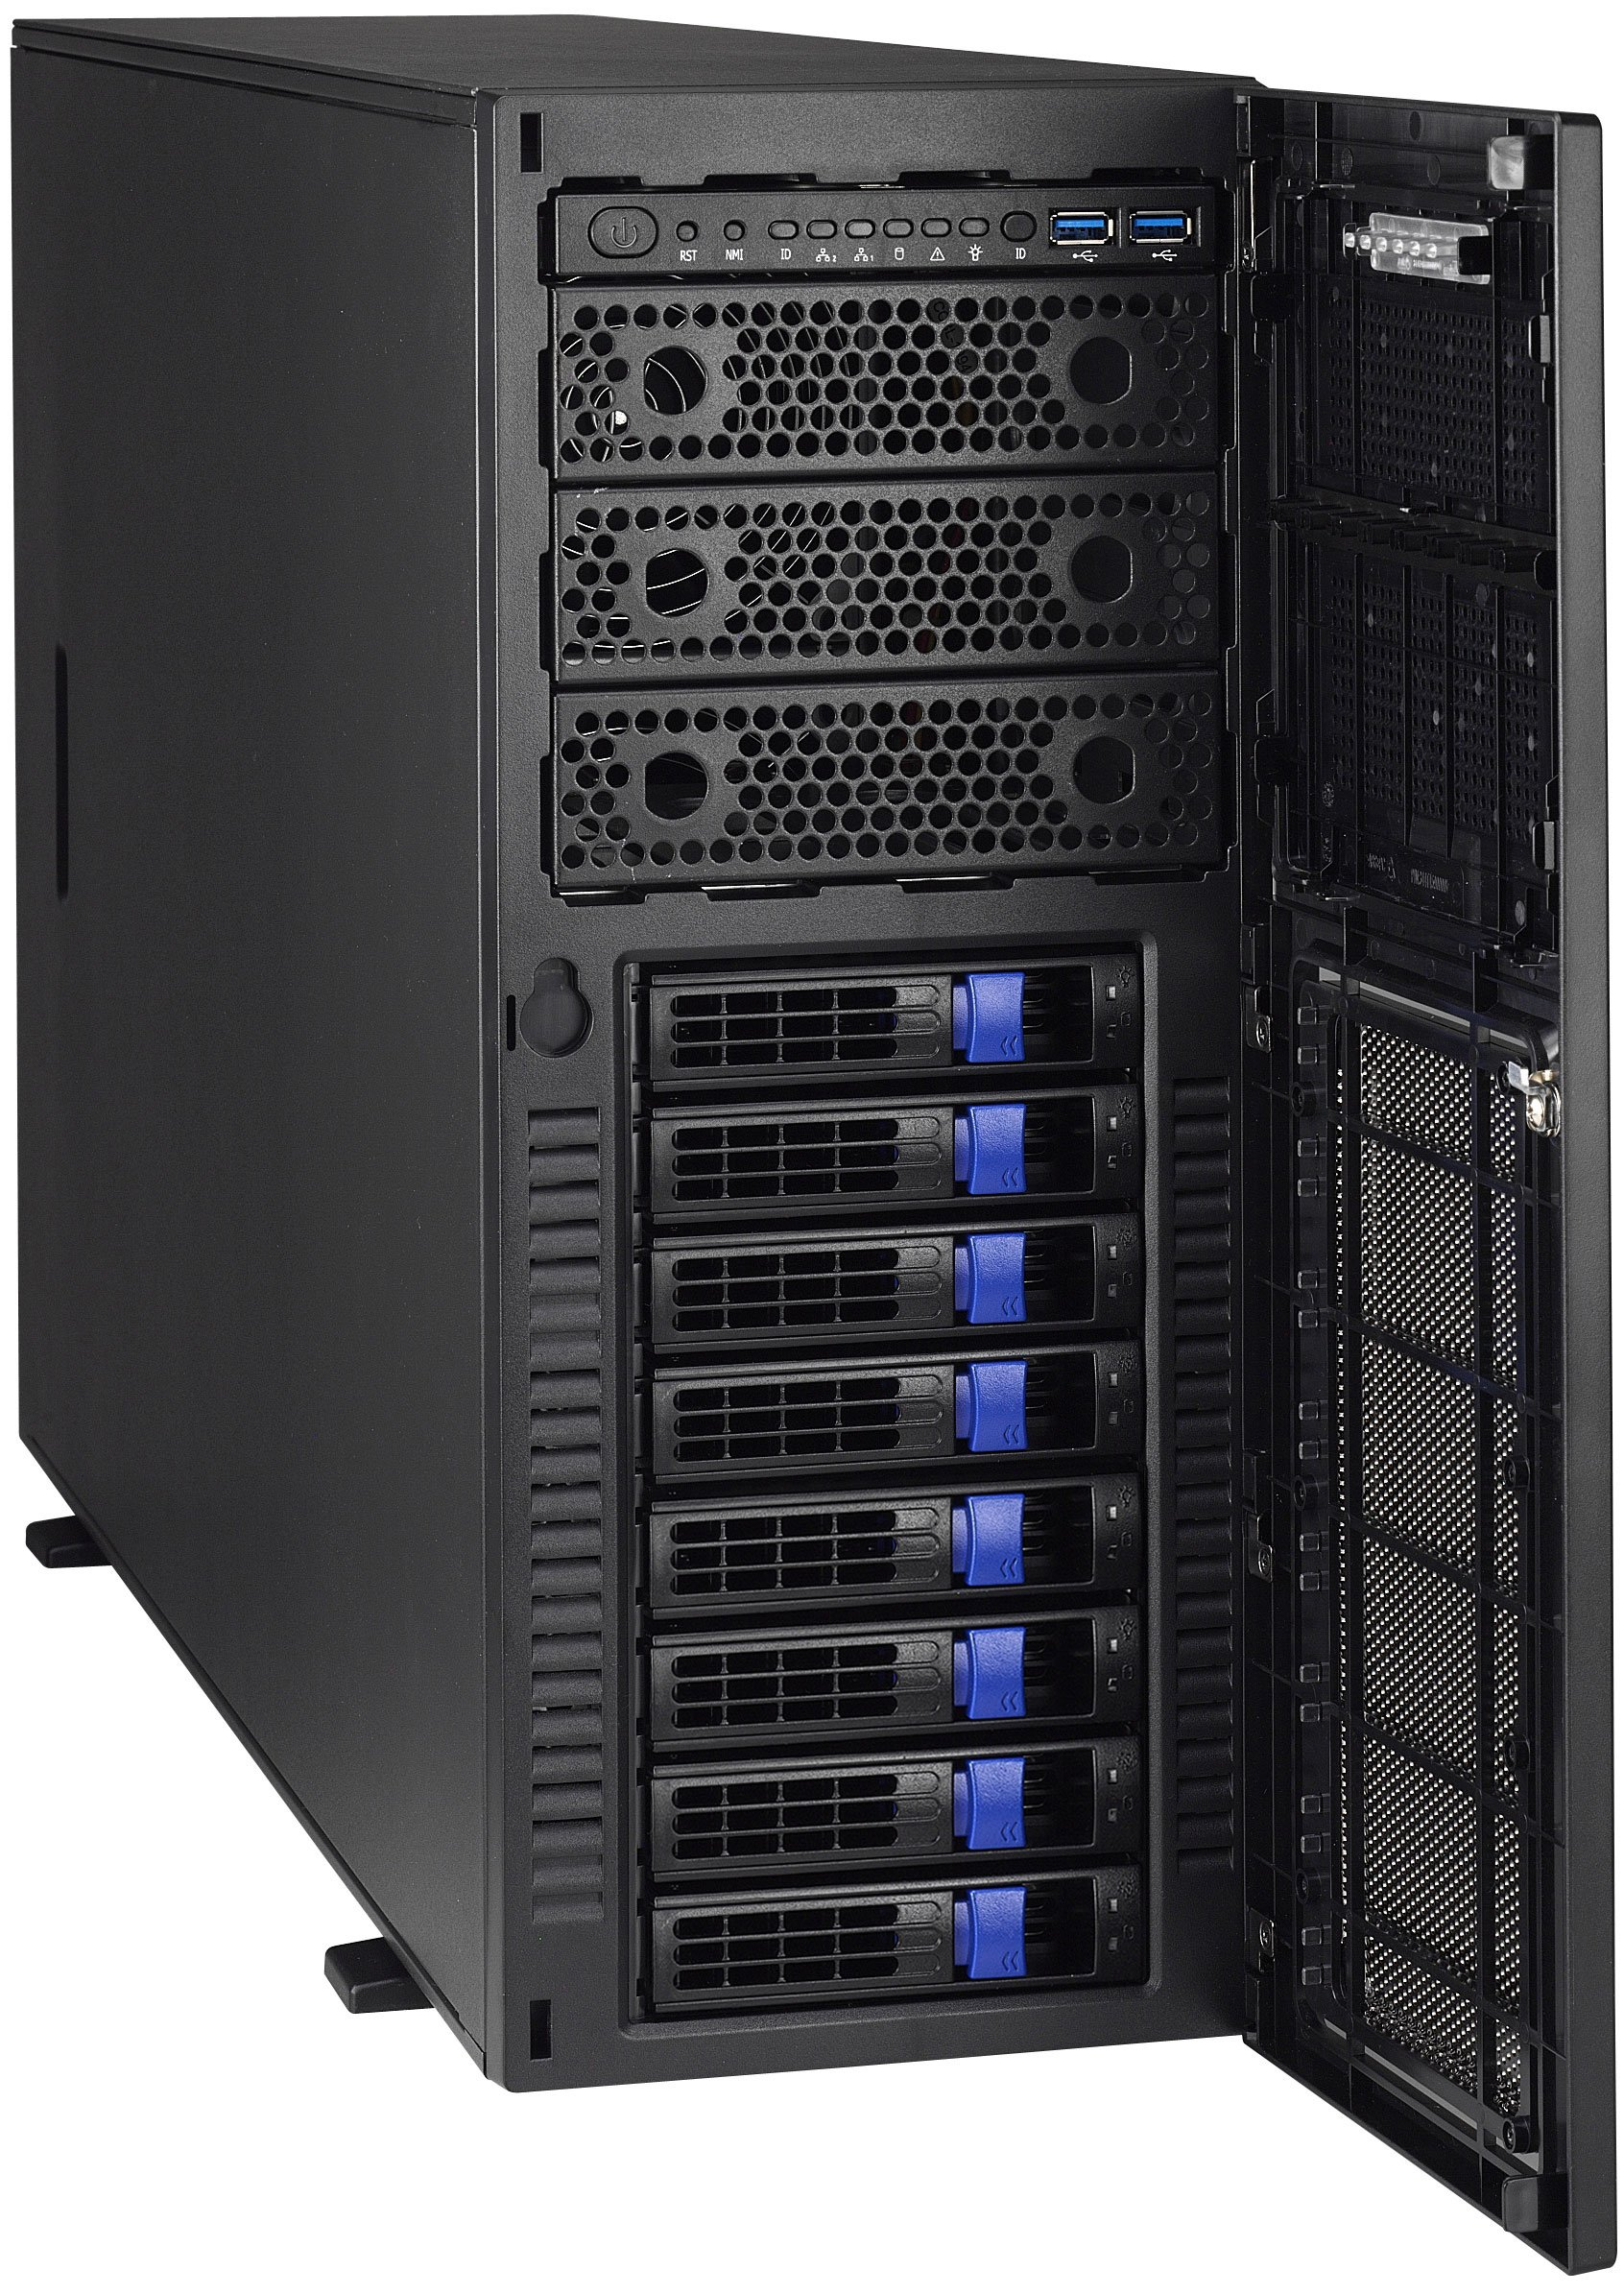 Tyan Thunder HX FT48T-B7105 (B7105F48TV8HR-2T-G) Pedestal 5-GPU Professional Workstation